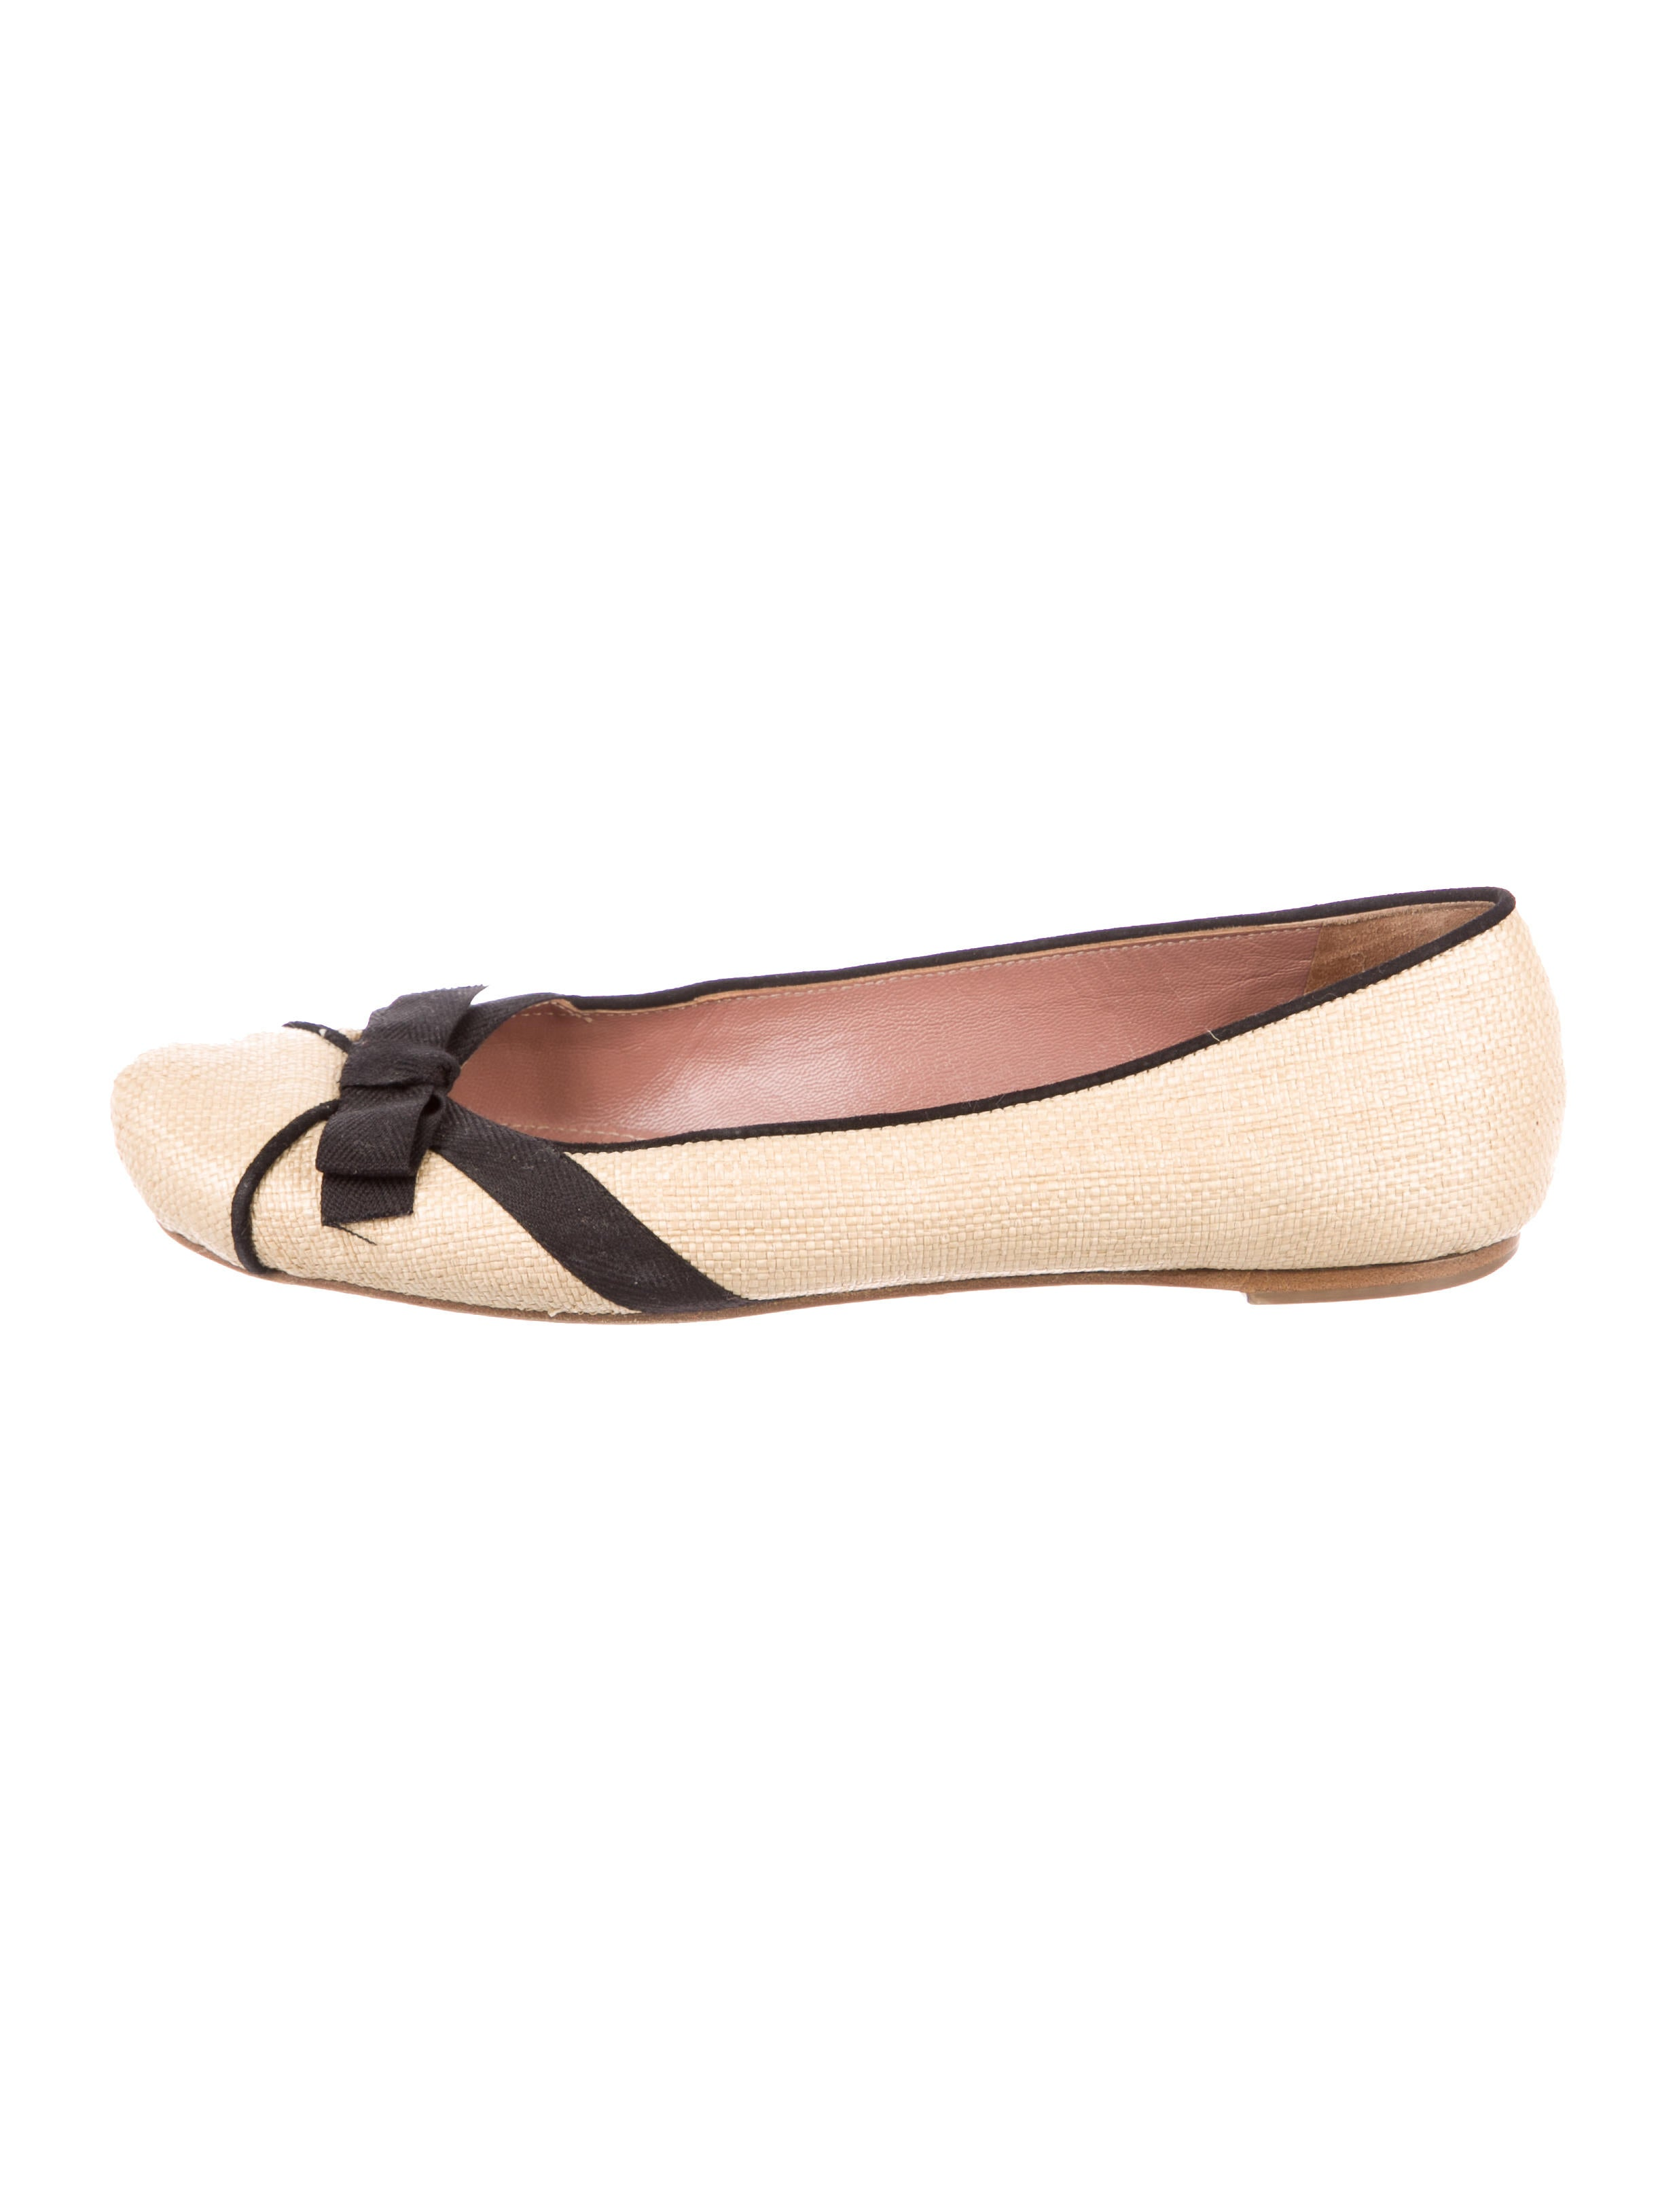 Alaïa Raffia Bow-Accented Flats 2015 new cheap price clearance footlocker finishline sale top quality cheap sale choice CHfUO3A